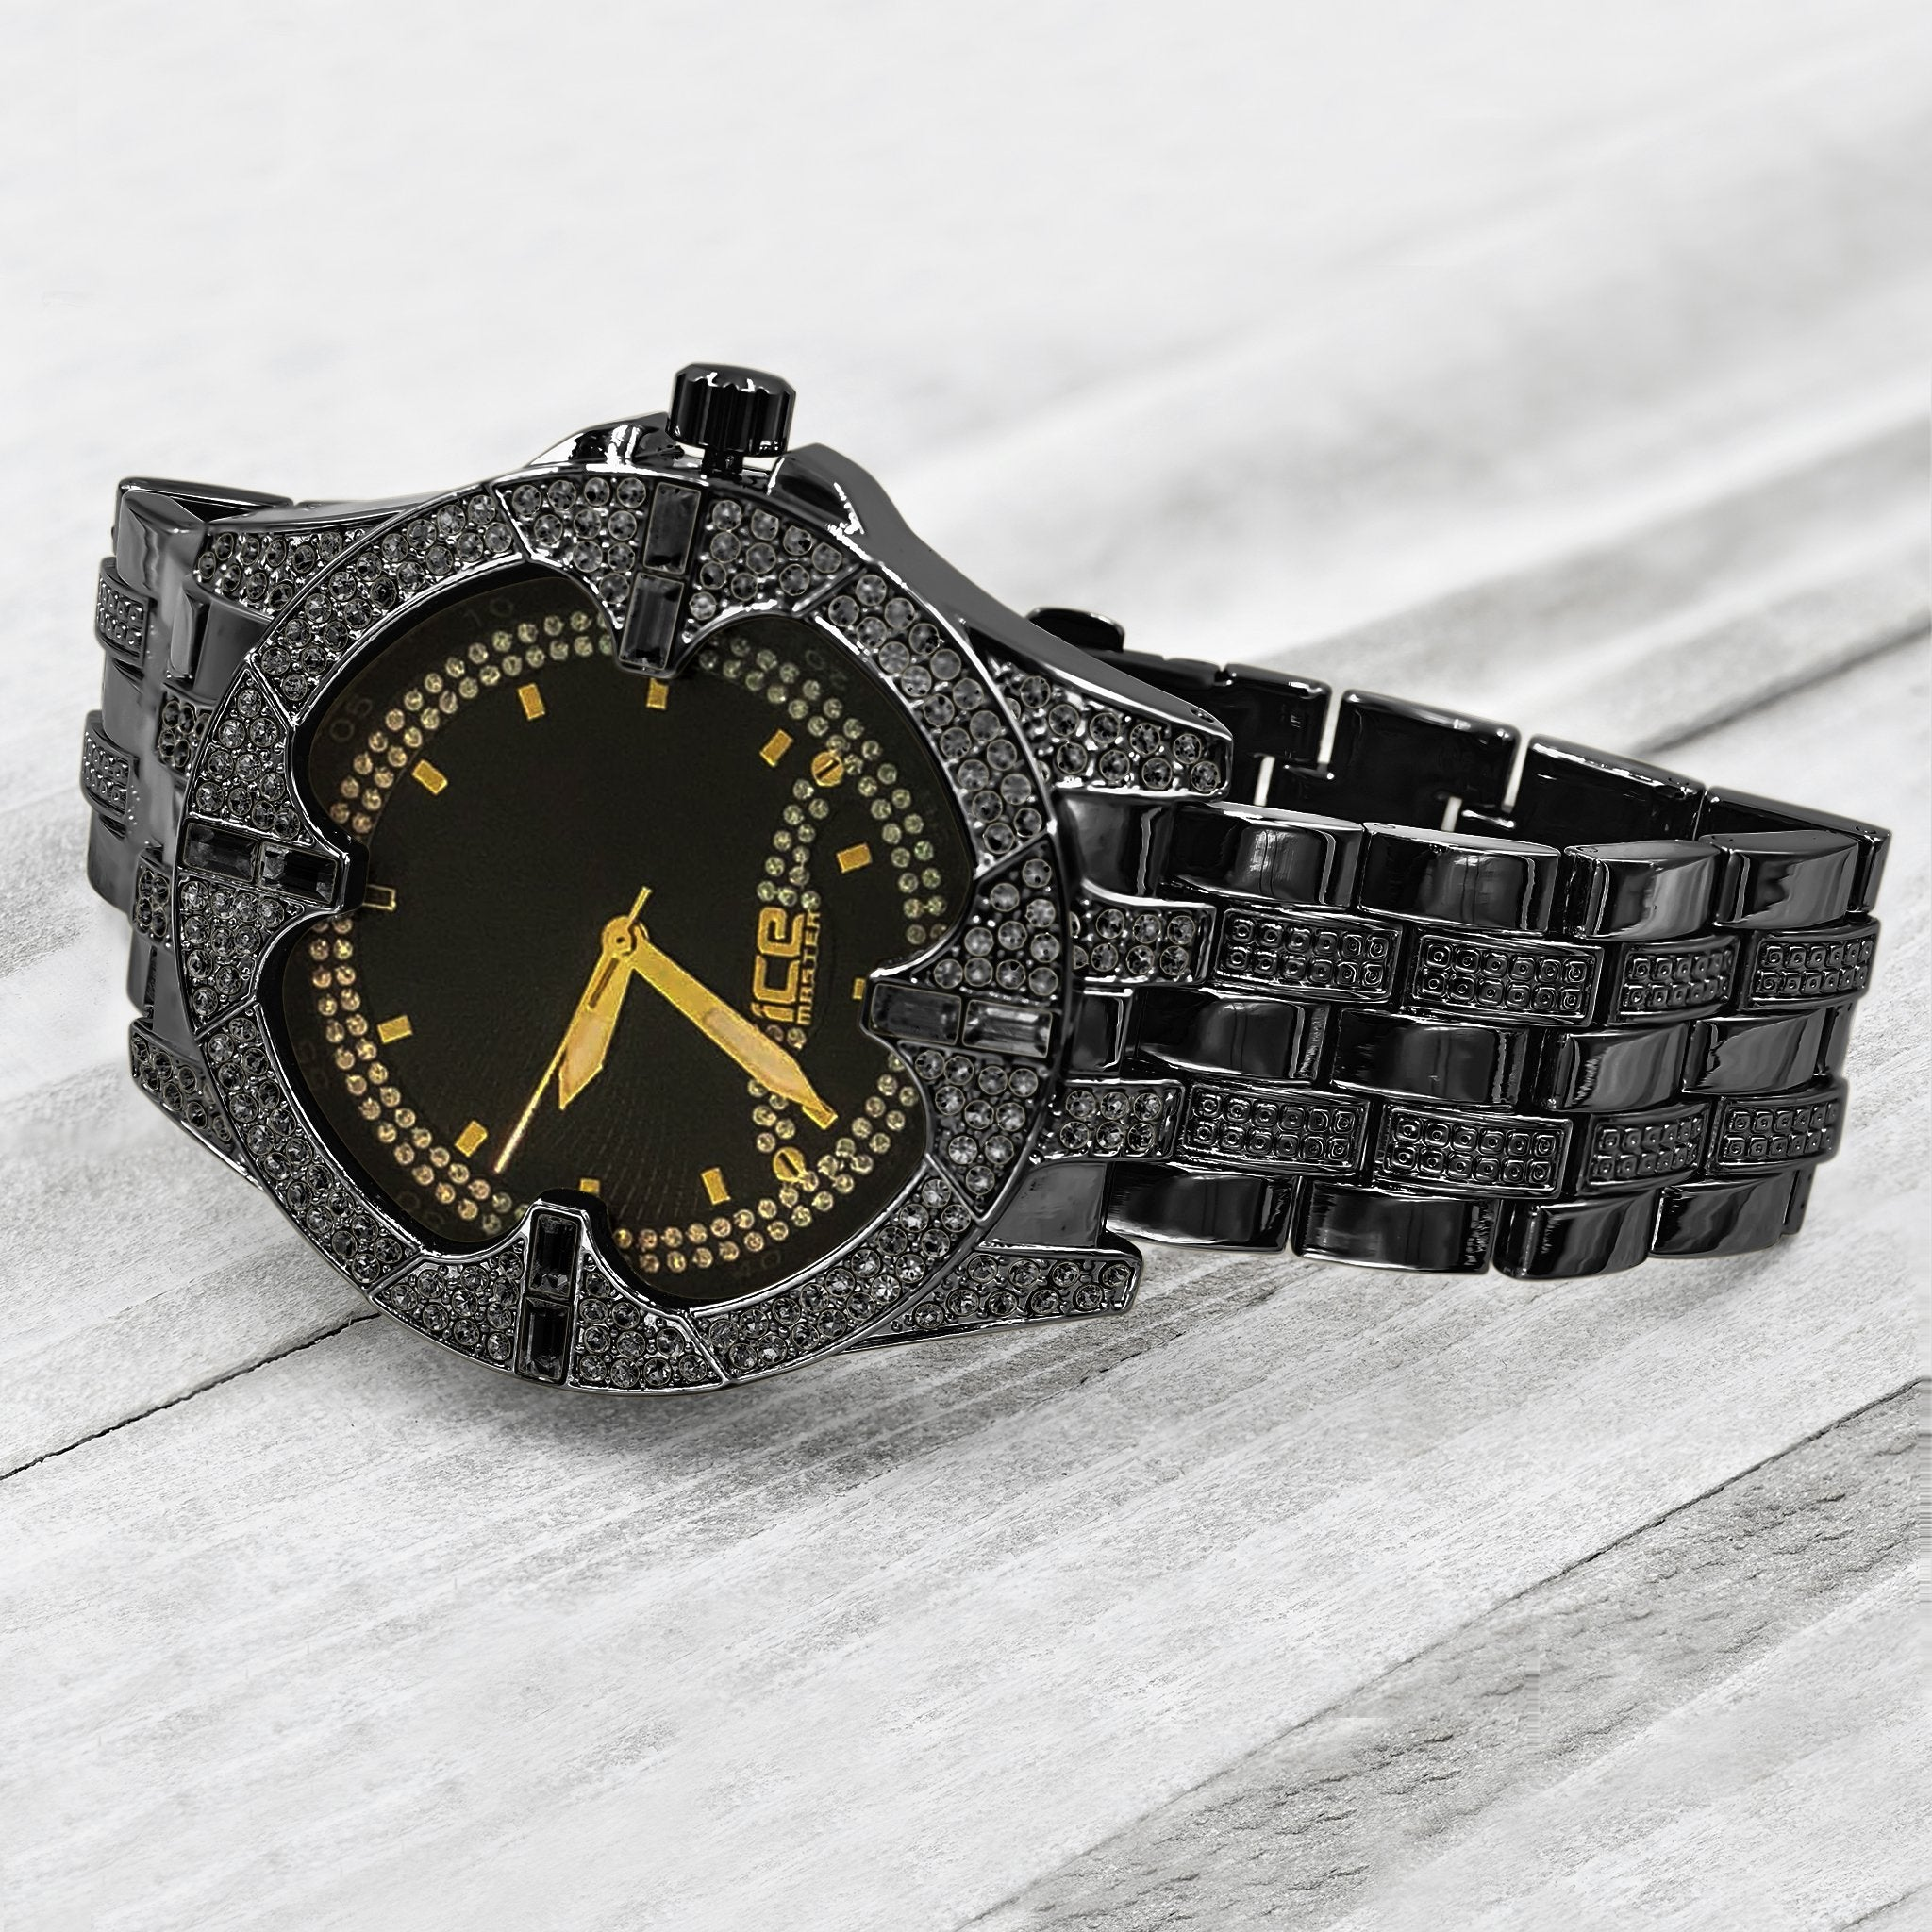 SOLITUDE ICE MASTER WATCH |562423 - Necklacescharm